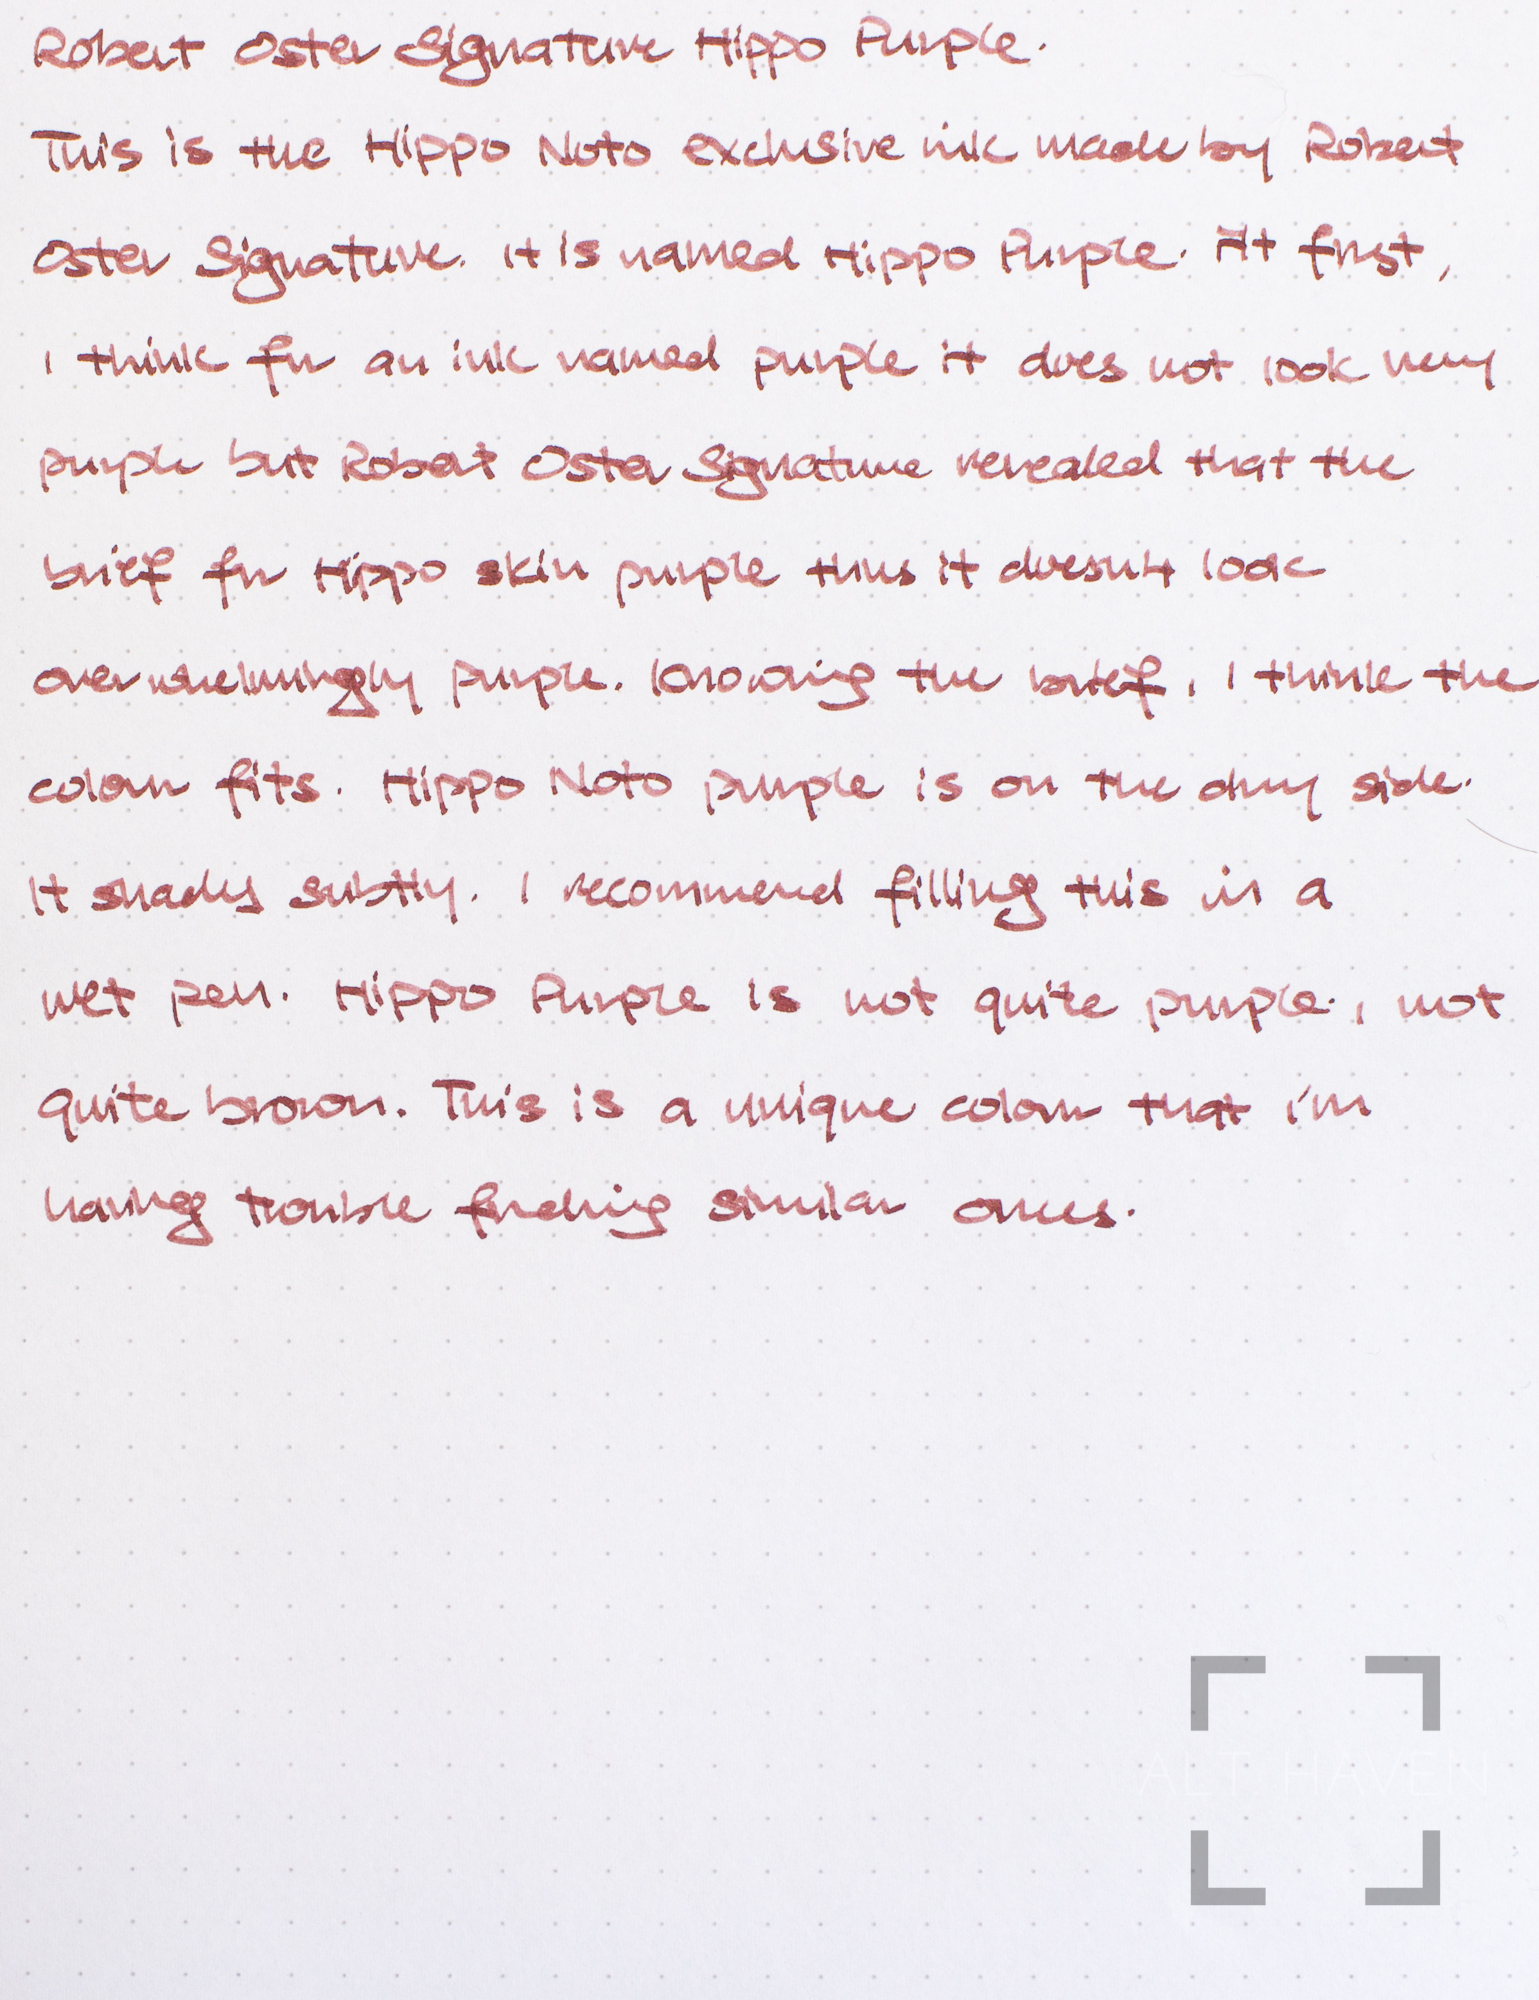 Robert Oster Hippo Purple-2.jpg